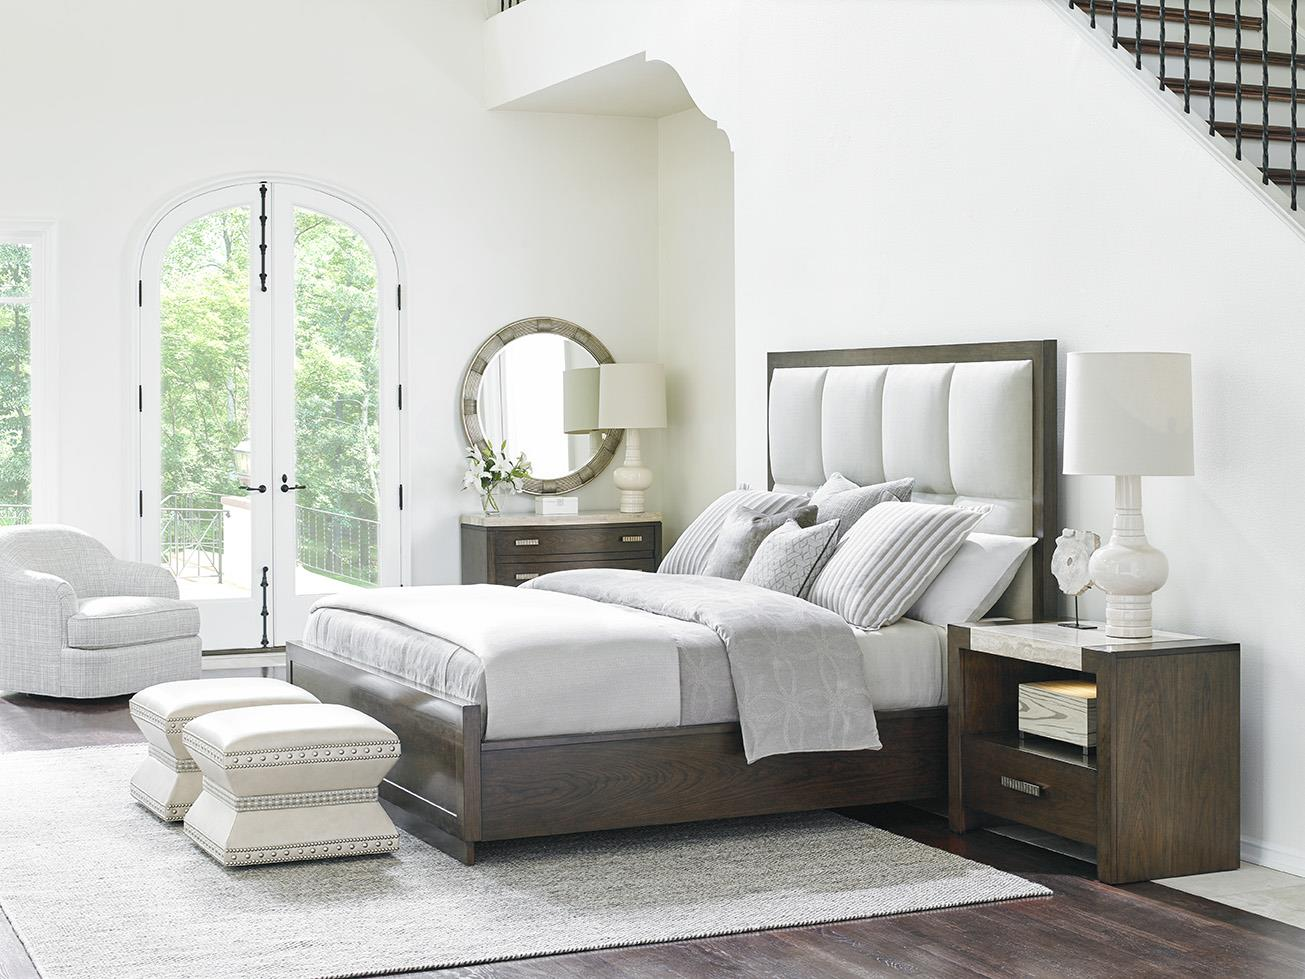 LAUREL CANYON Queen Bedroom Group by Lexington at Johnny Janosik